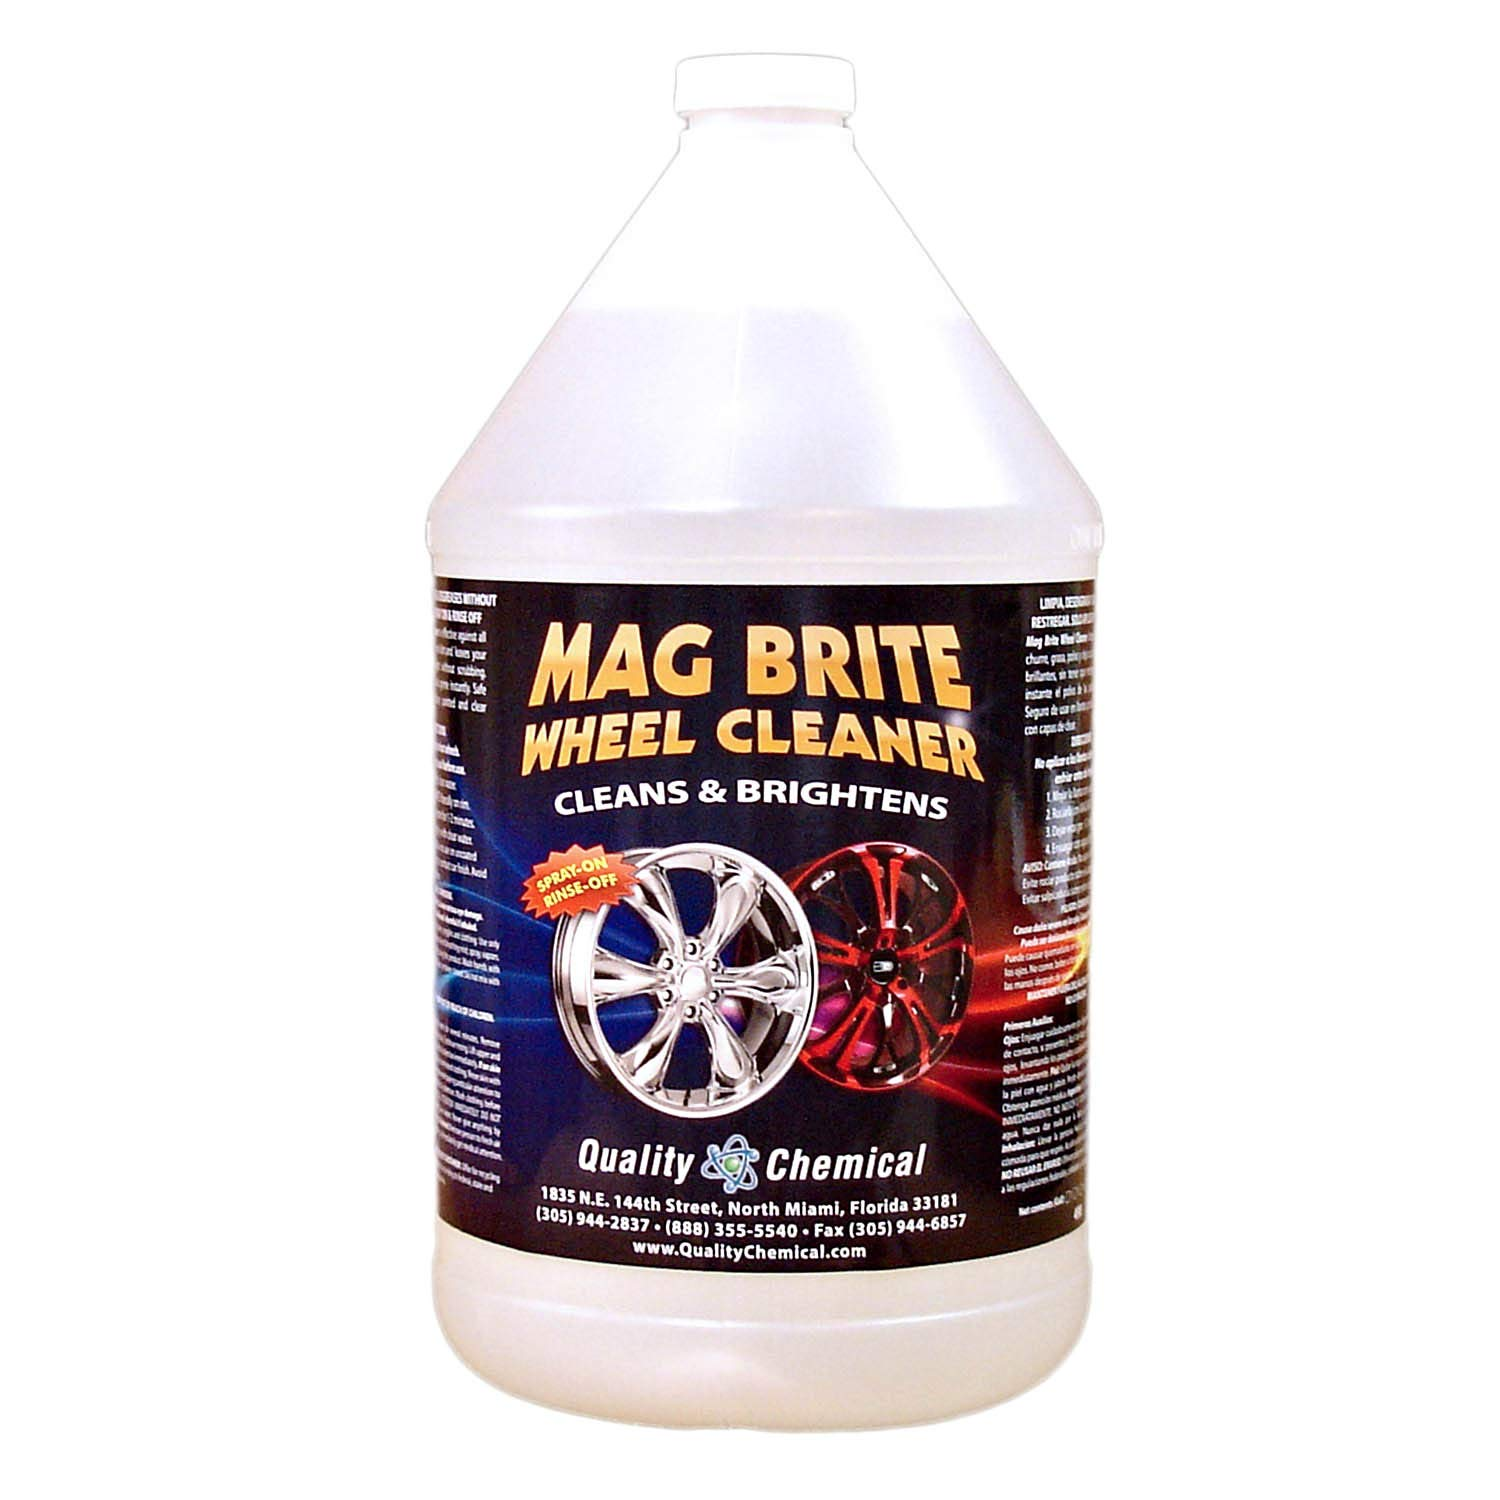 Quality Chemical Mag Brite - Acid wheel cleaner formulated to safely remove brake dust and heavy road film.-1 gallon (128 oz.)